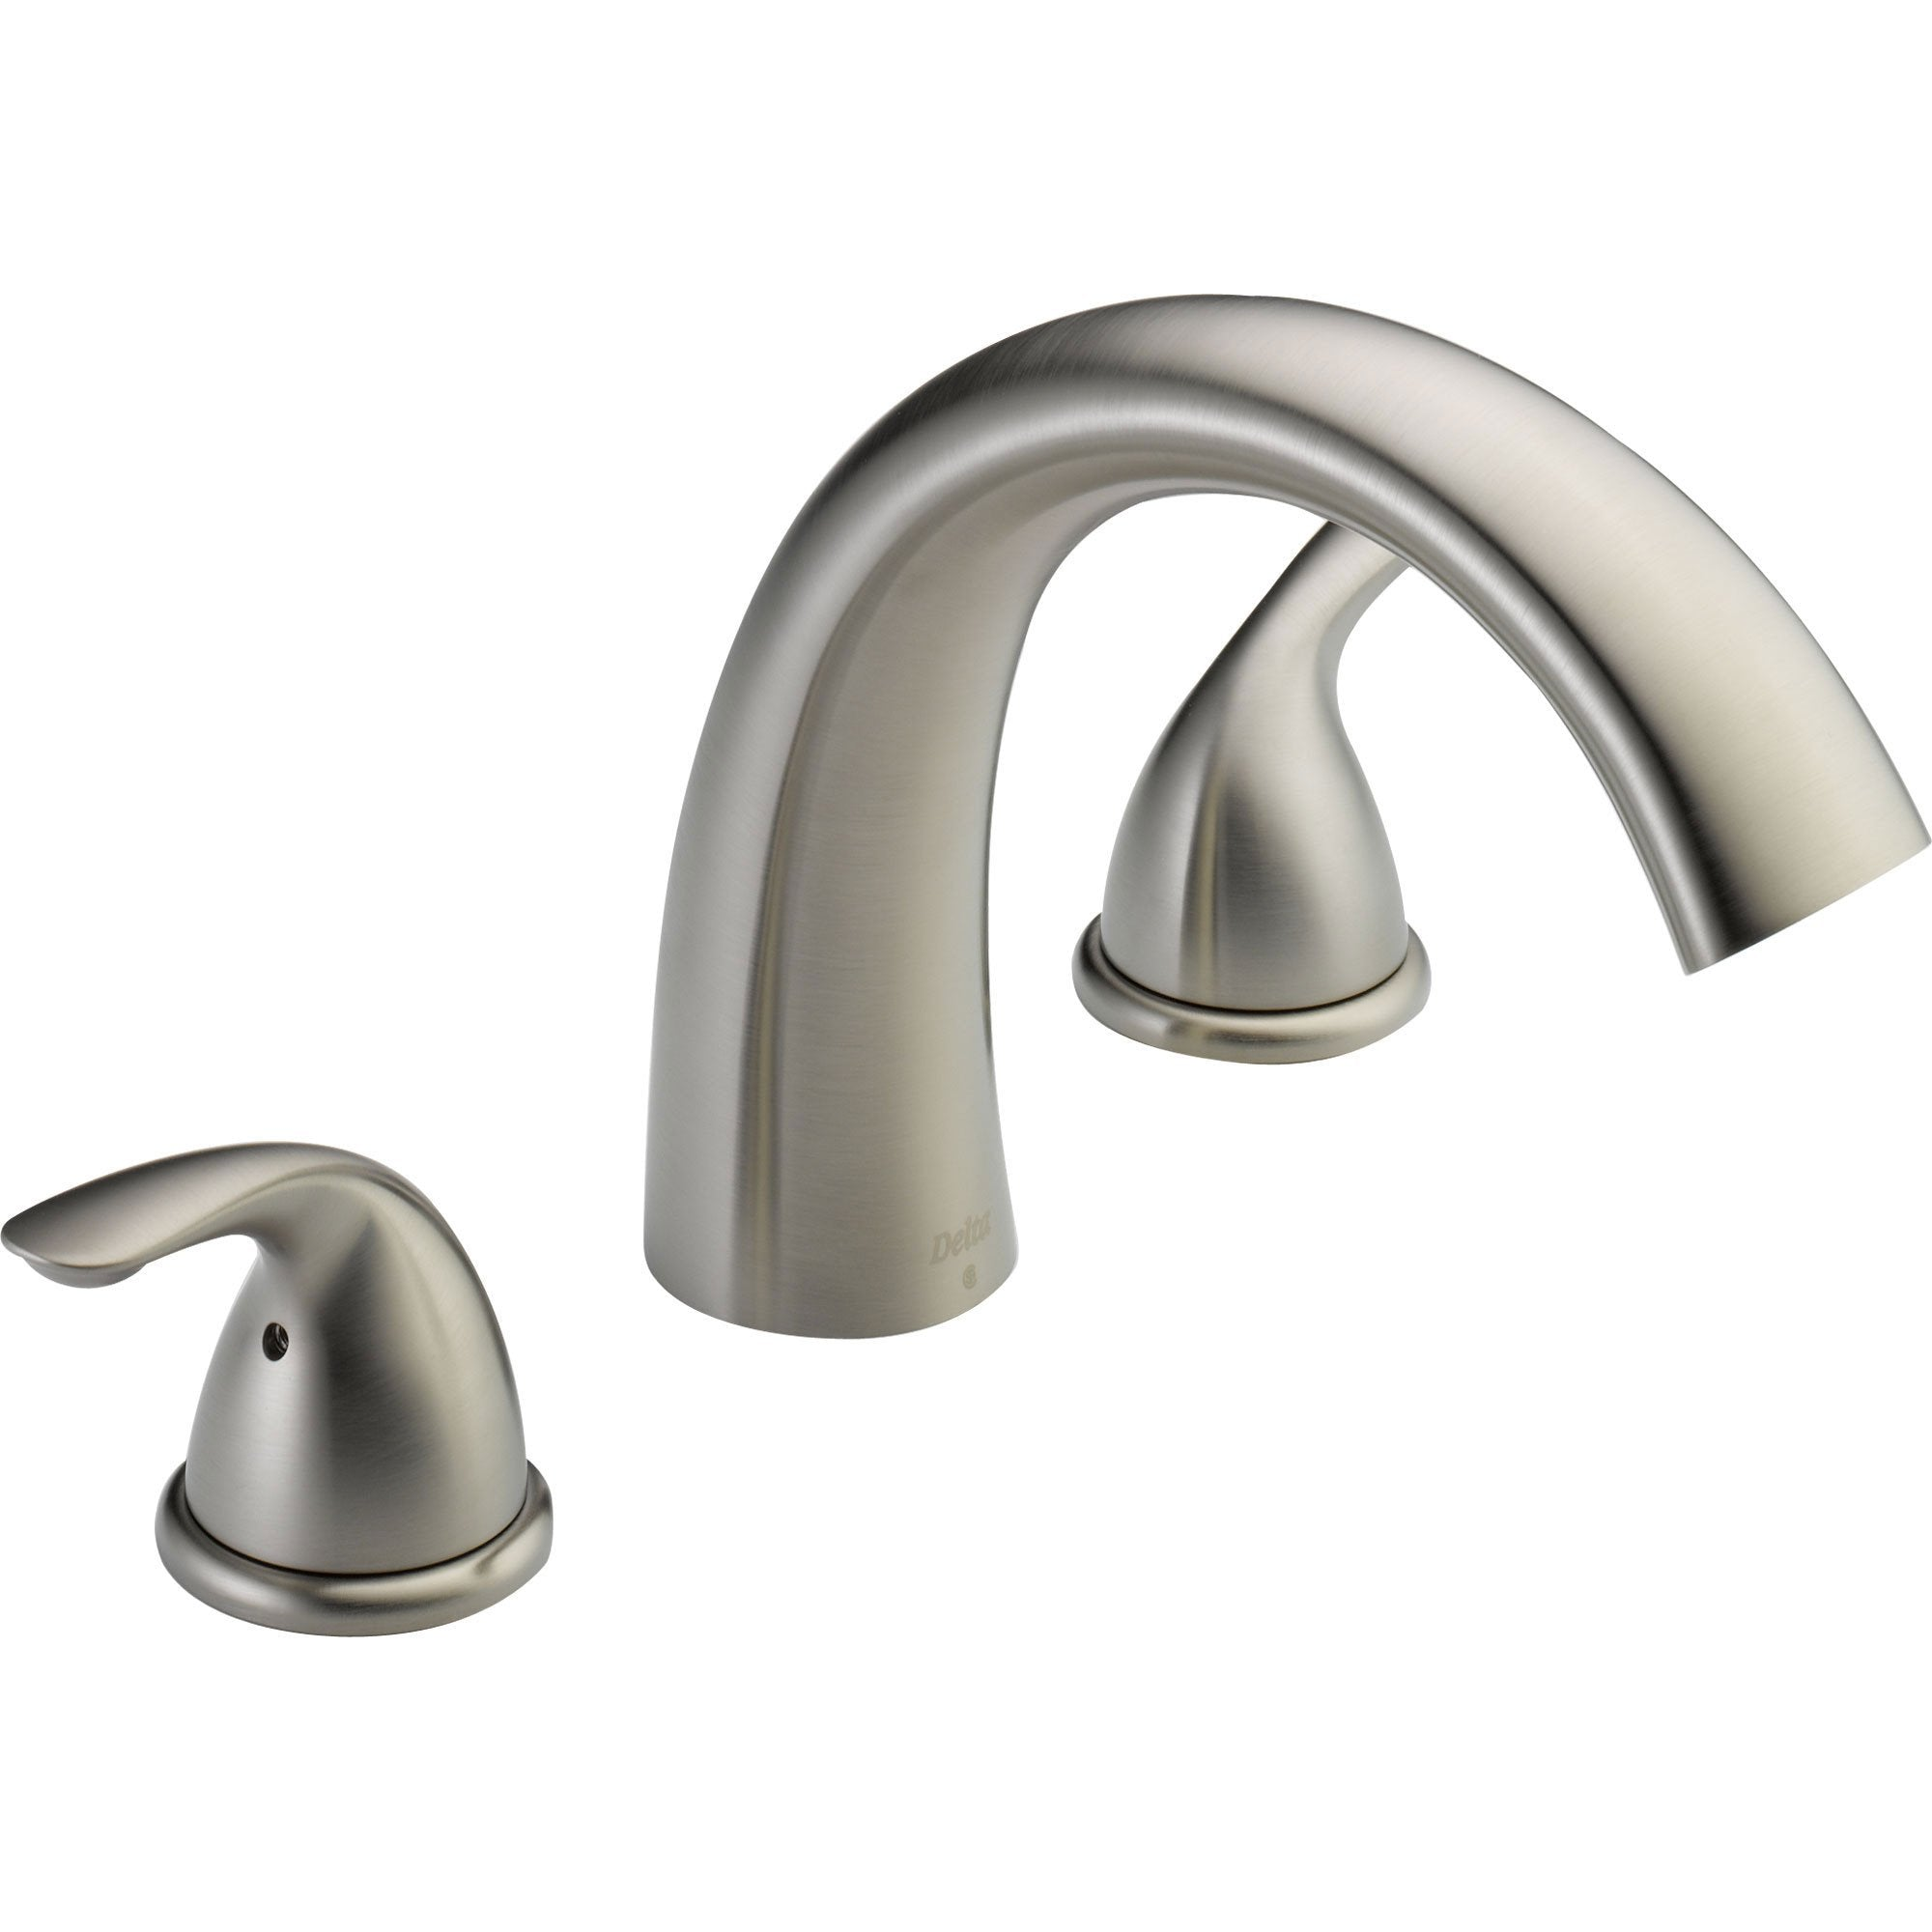 Delta Classic Stainless Steel Finish Roman Tub Filler Faucet Trim Kit 586332